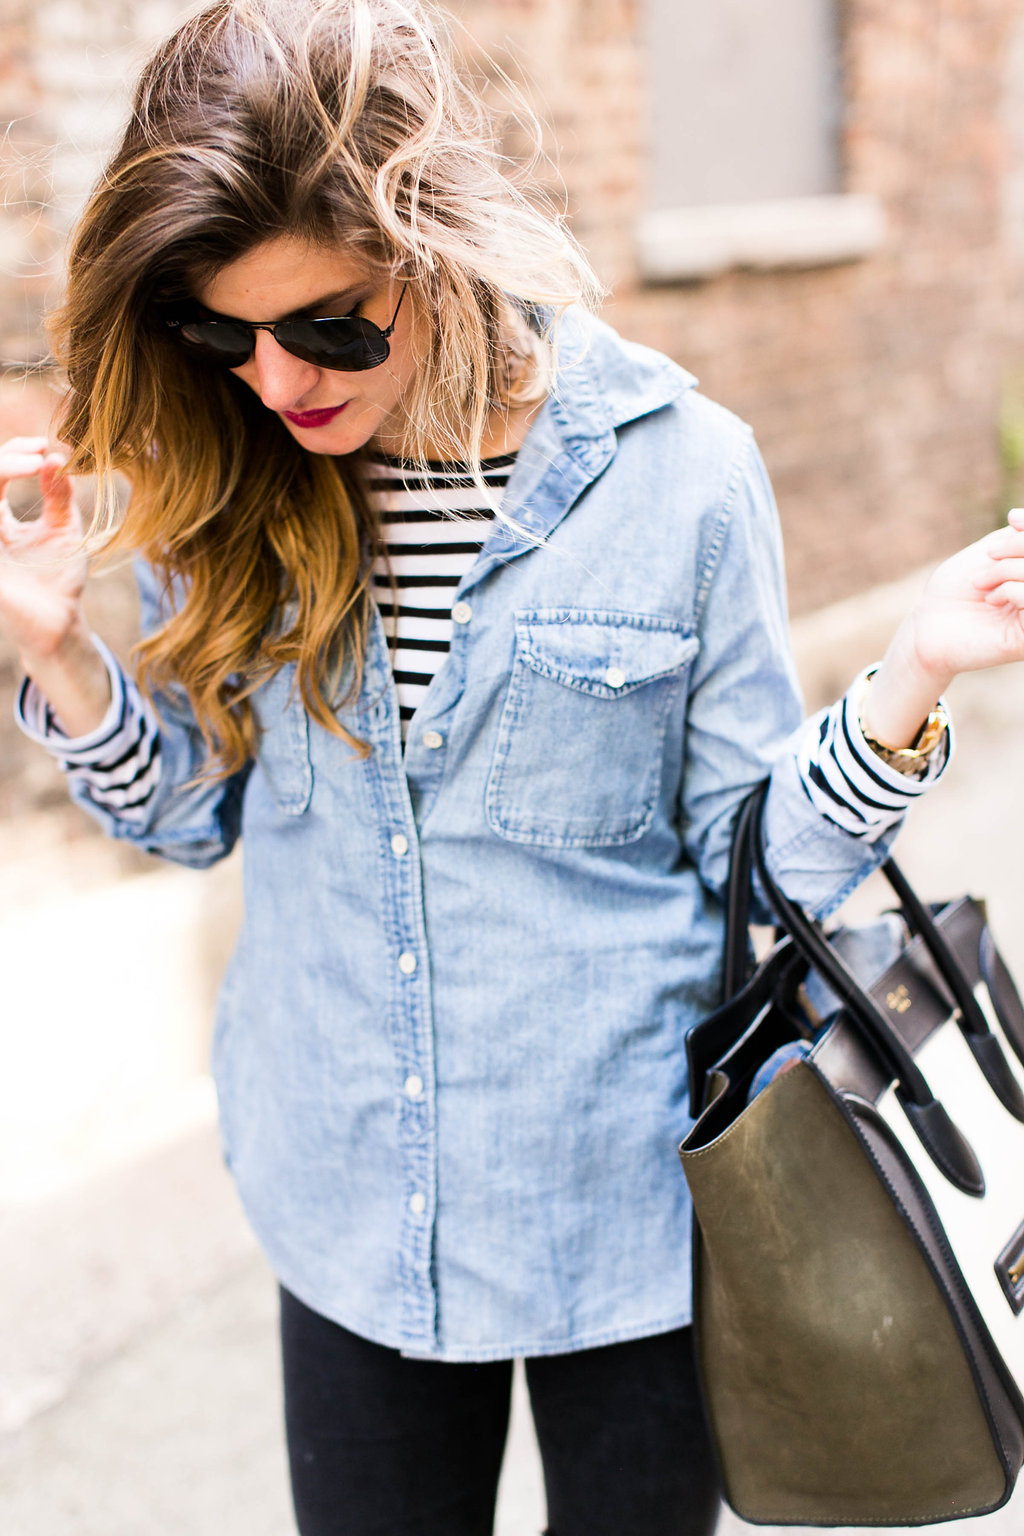 brighton the day styling black jeans with chambray shirt